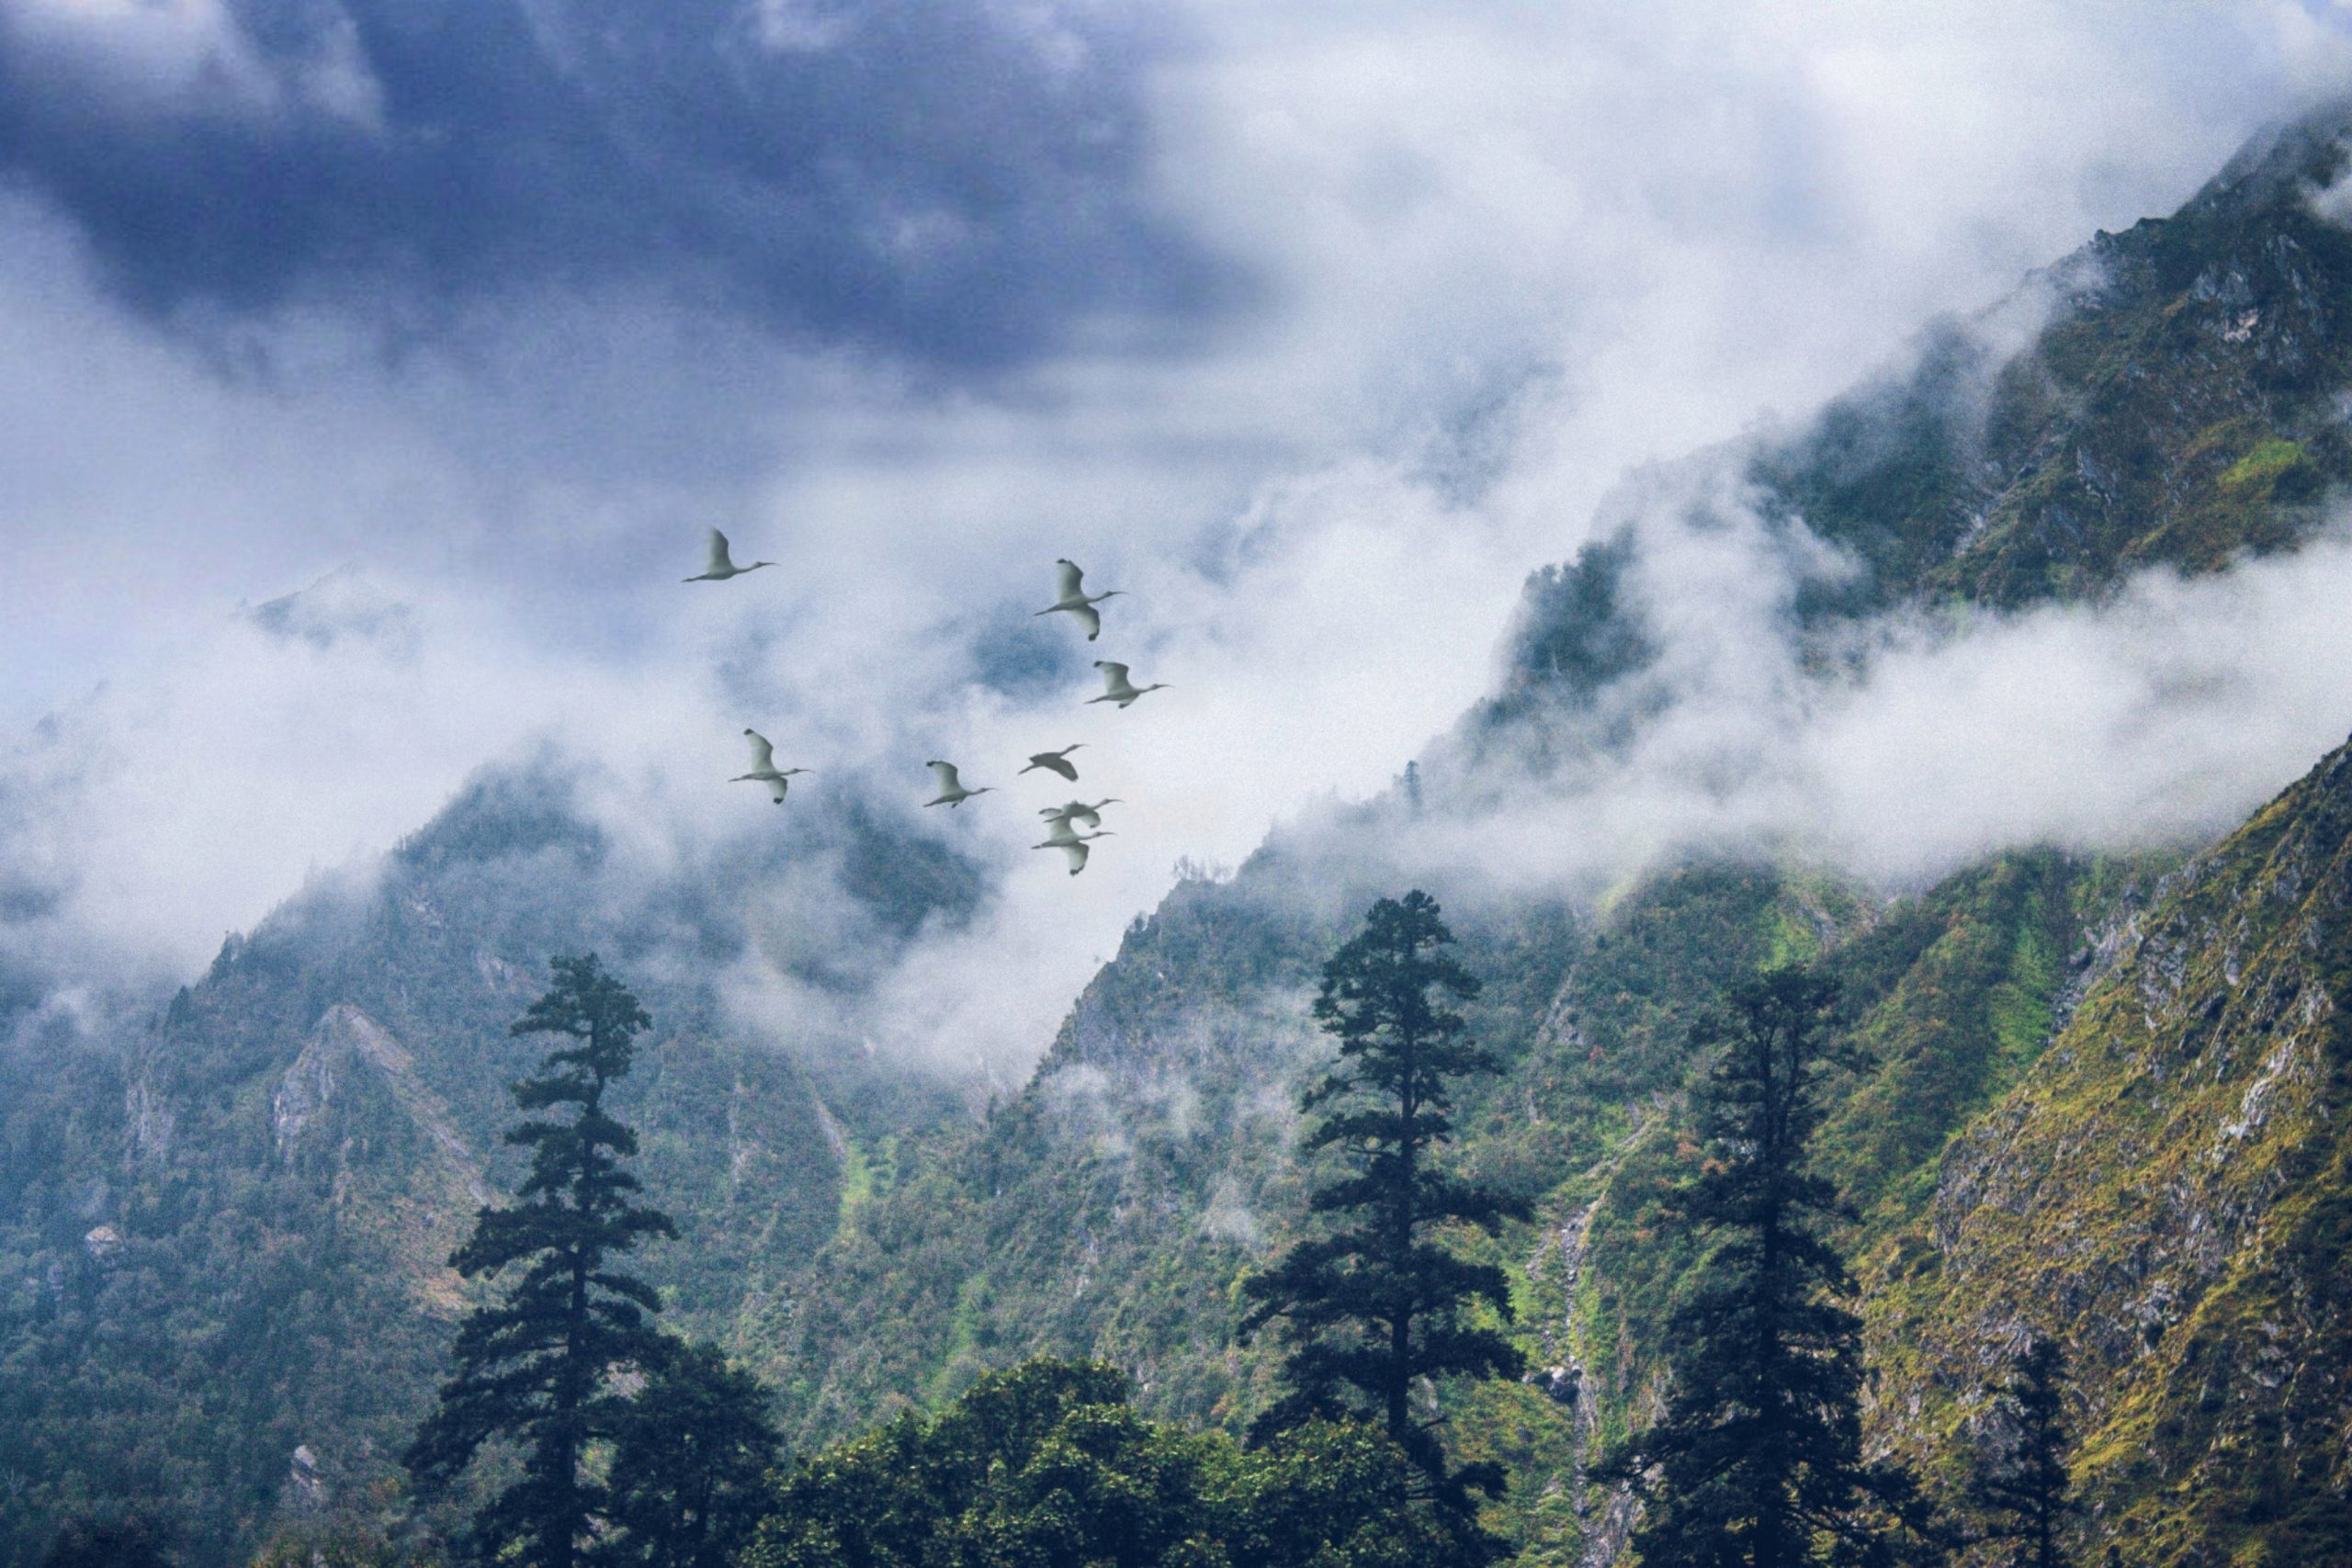 Flock of birds passing through the fog.